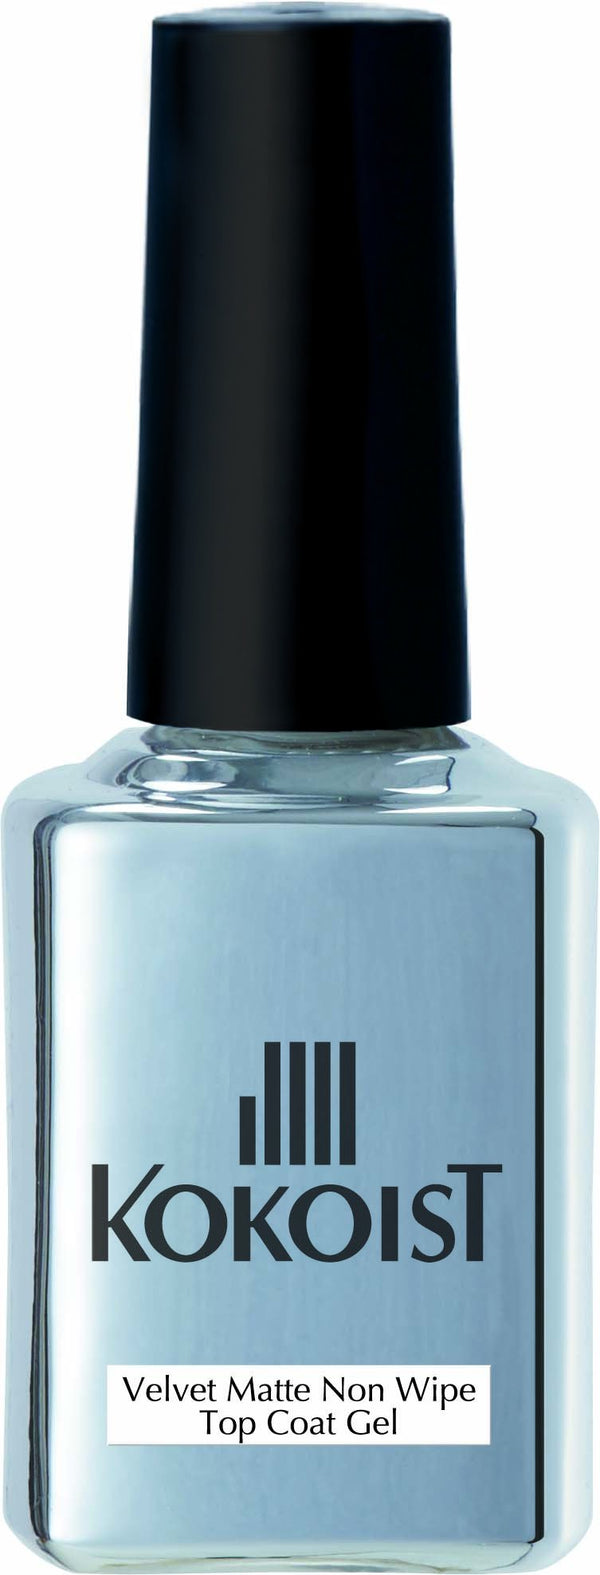 Velvet Matte Non Wipe Top Coat 15ml